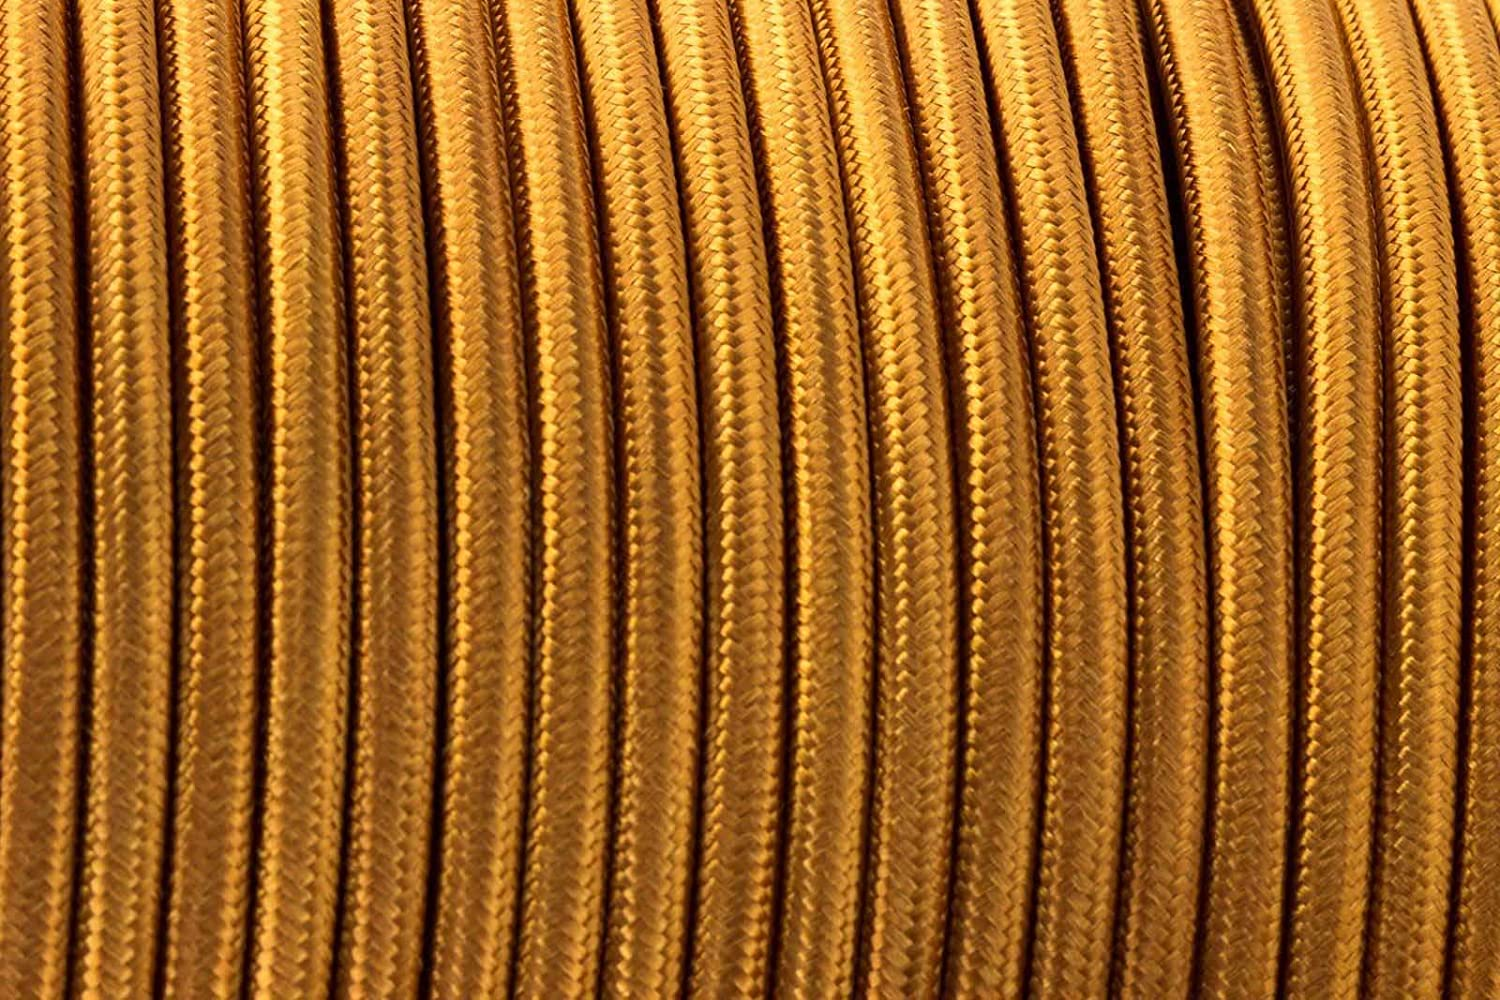 3 Core fabric Braided Cable Lighting Flex Cord Vintage Industrial (1m, Gold) LEDSone